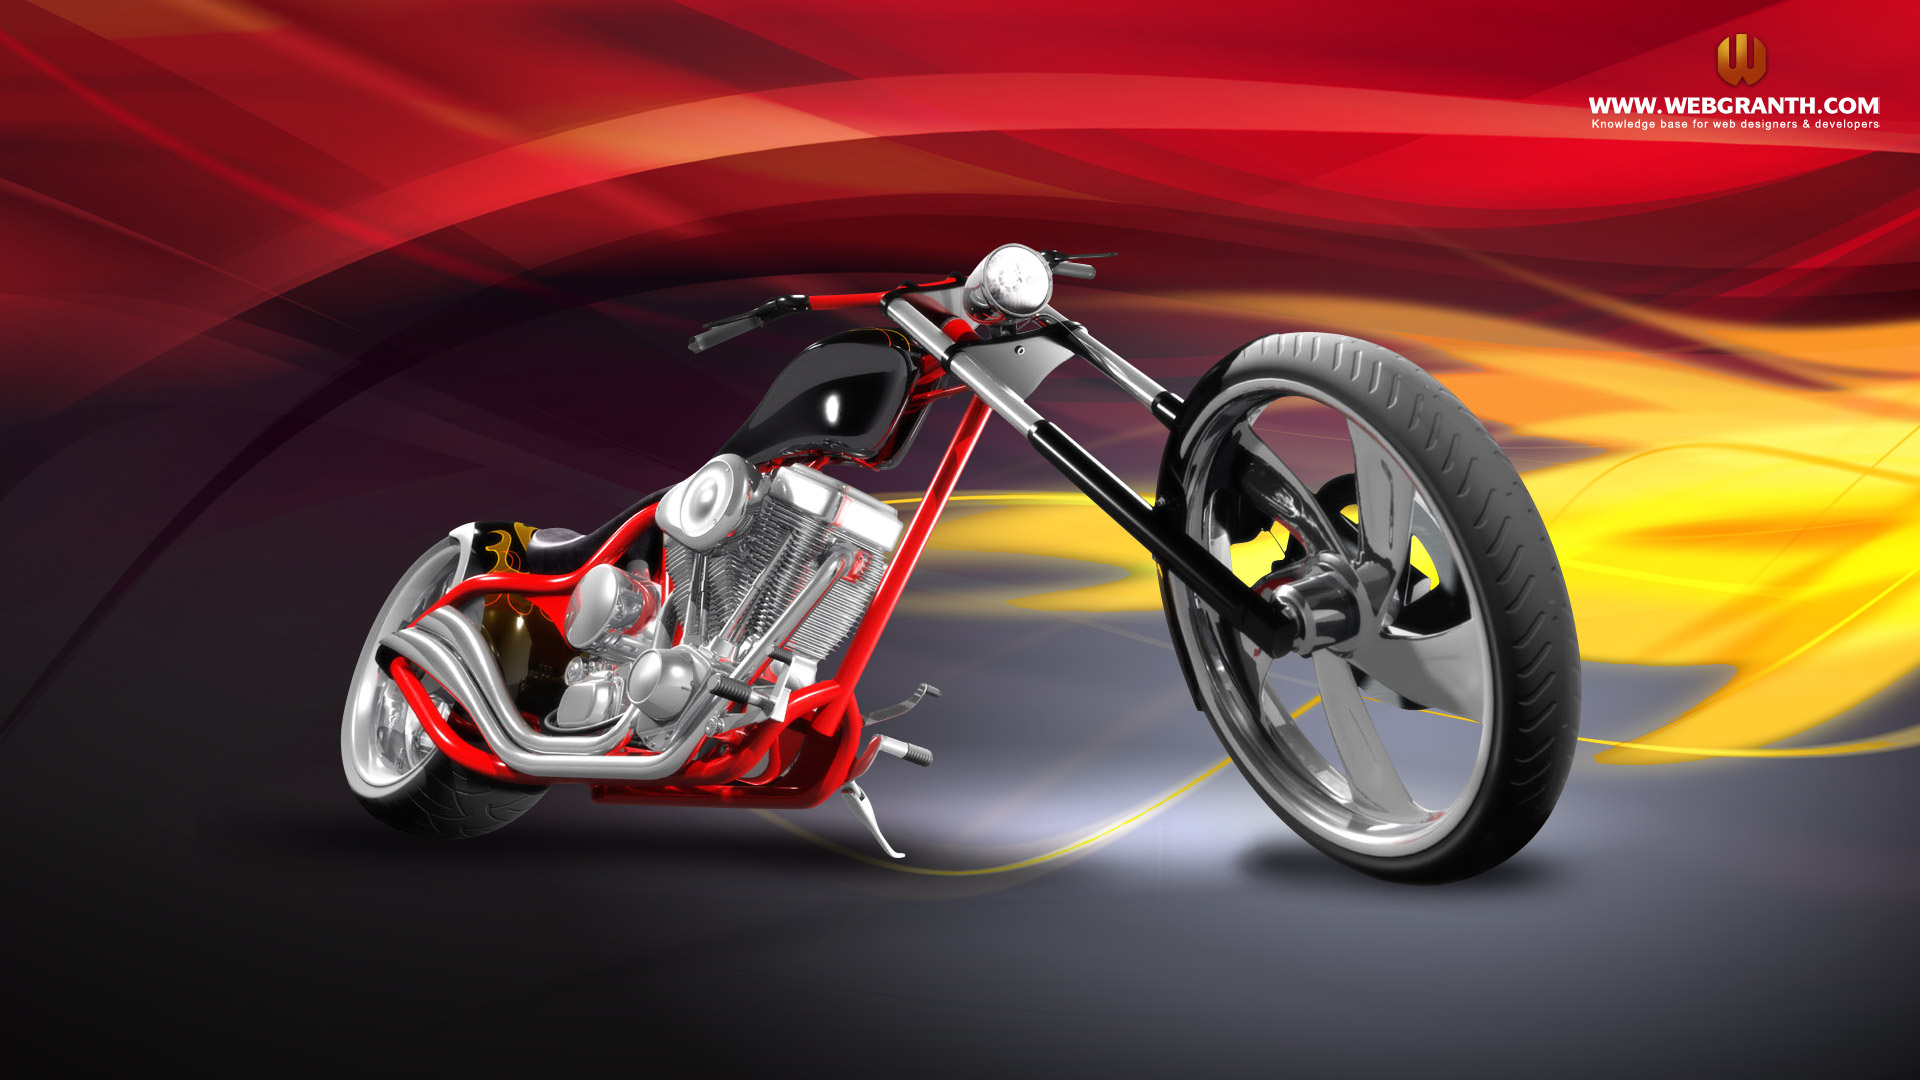 Free Wallpapers Downloads 47 Cool Bike Wallpapers Backgrounds In Hd For Free Download